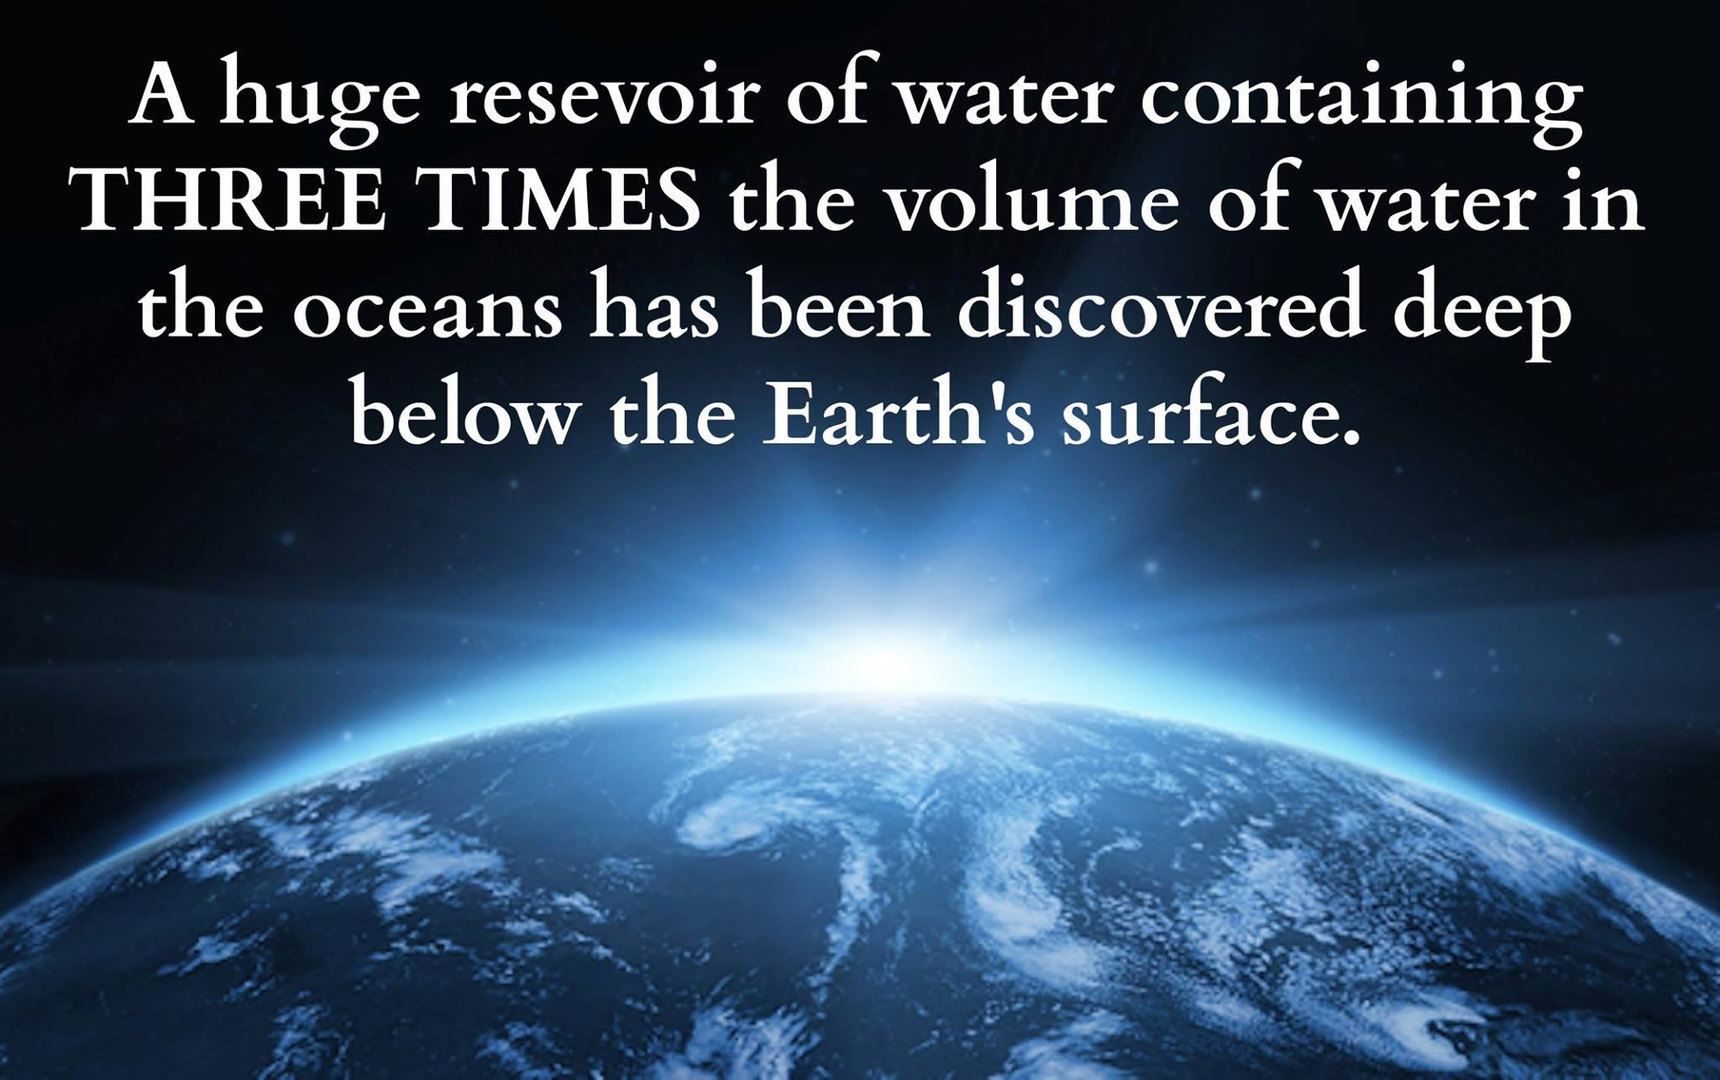 It has been discovered 400 miles beneath earth's surface (magma, that is - which indicates presence of water, but its a radical of H2O Called OH) - meme